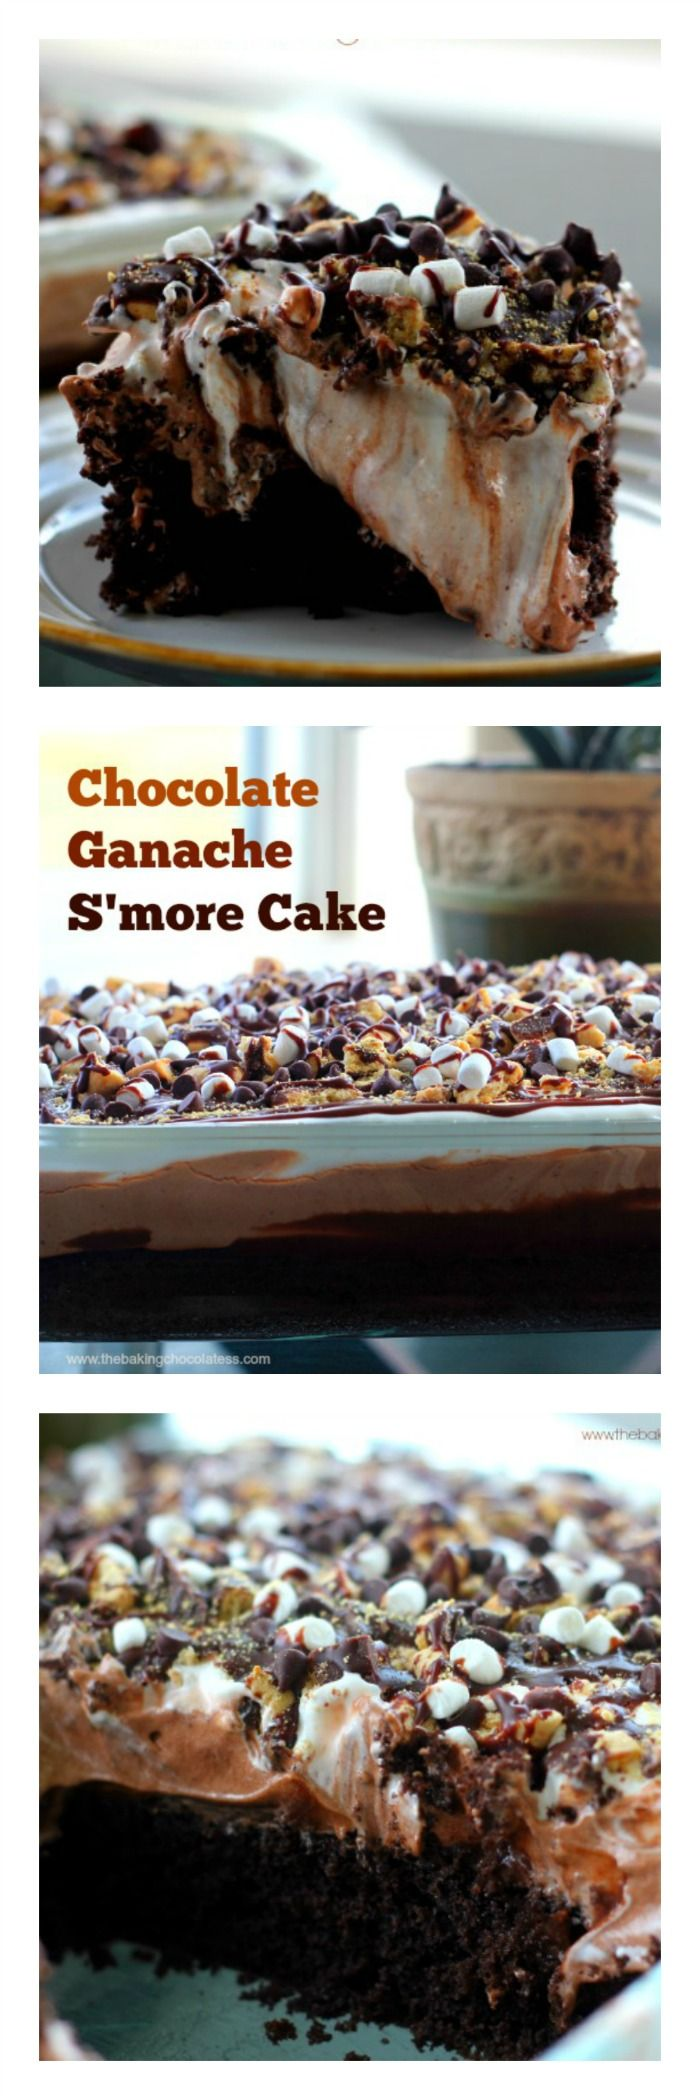 Chocolate Ganache S'More Cake {It's What Sweet Dreams are Made of} via @HTTP://www.pinterest.com/BaknChocolaTess/